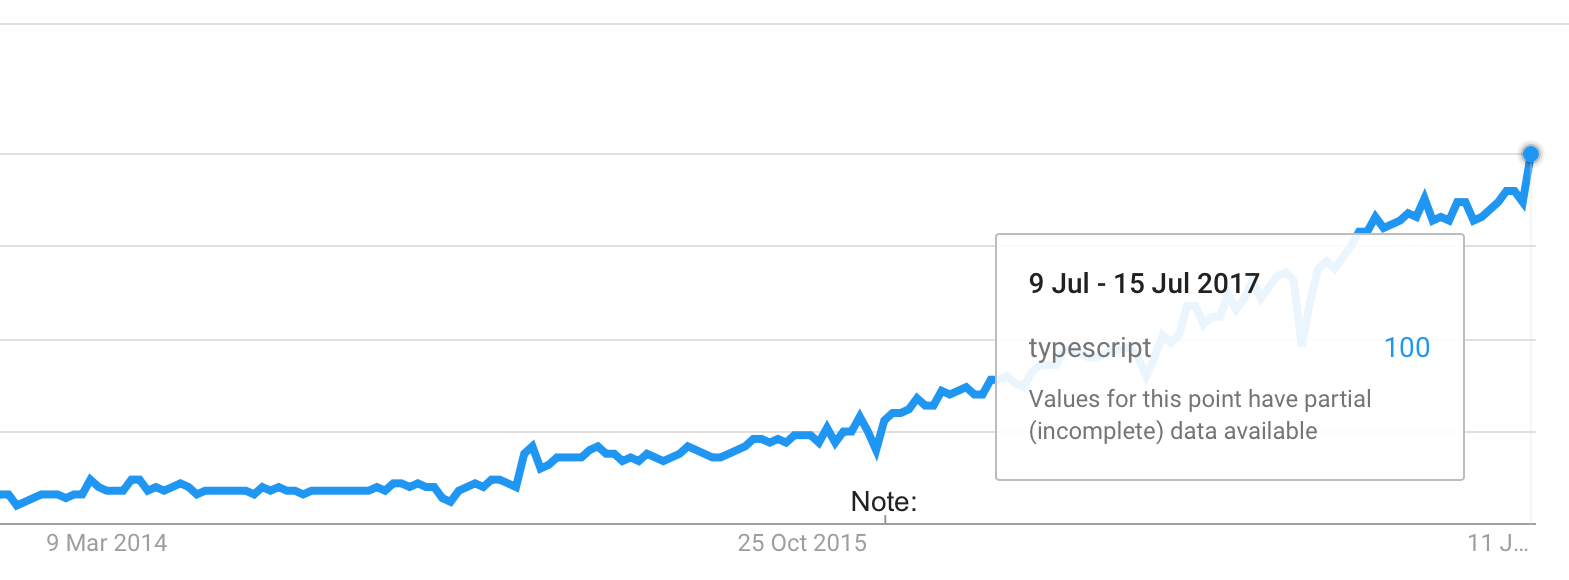 TypeScript interest peaks in Google Trends' July 2017 stats